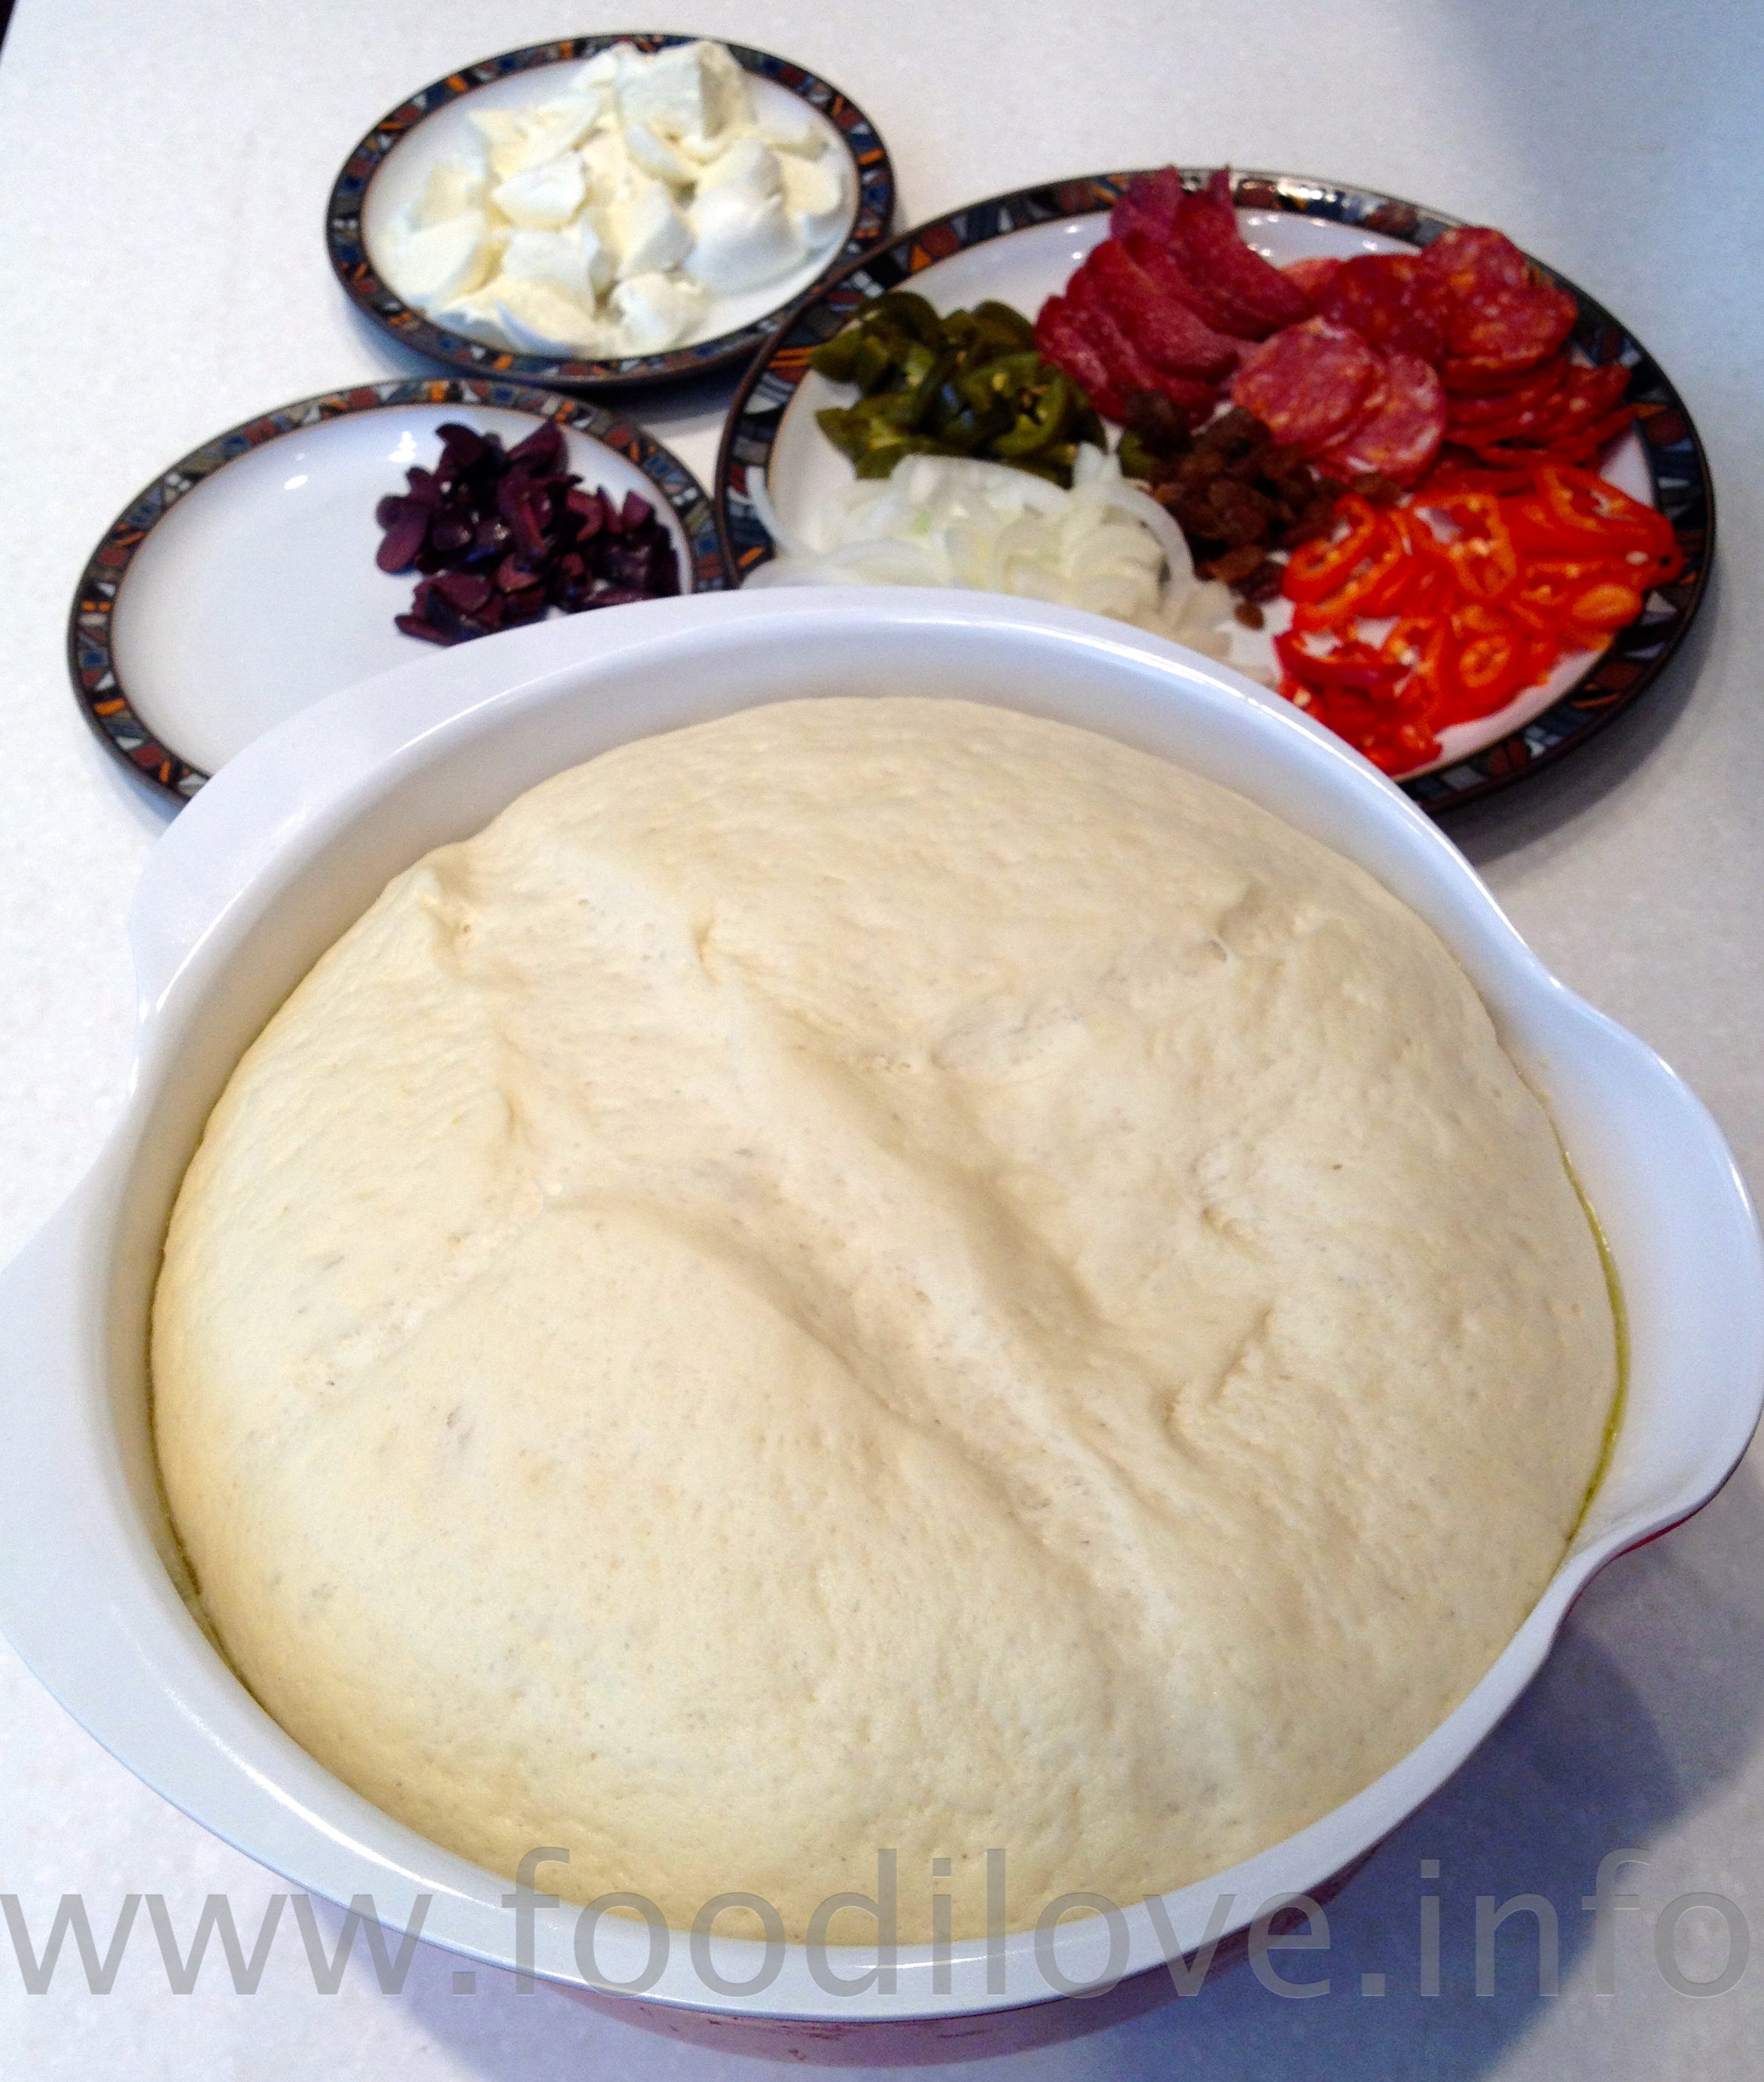 Dough has more than doubled in size